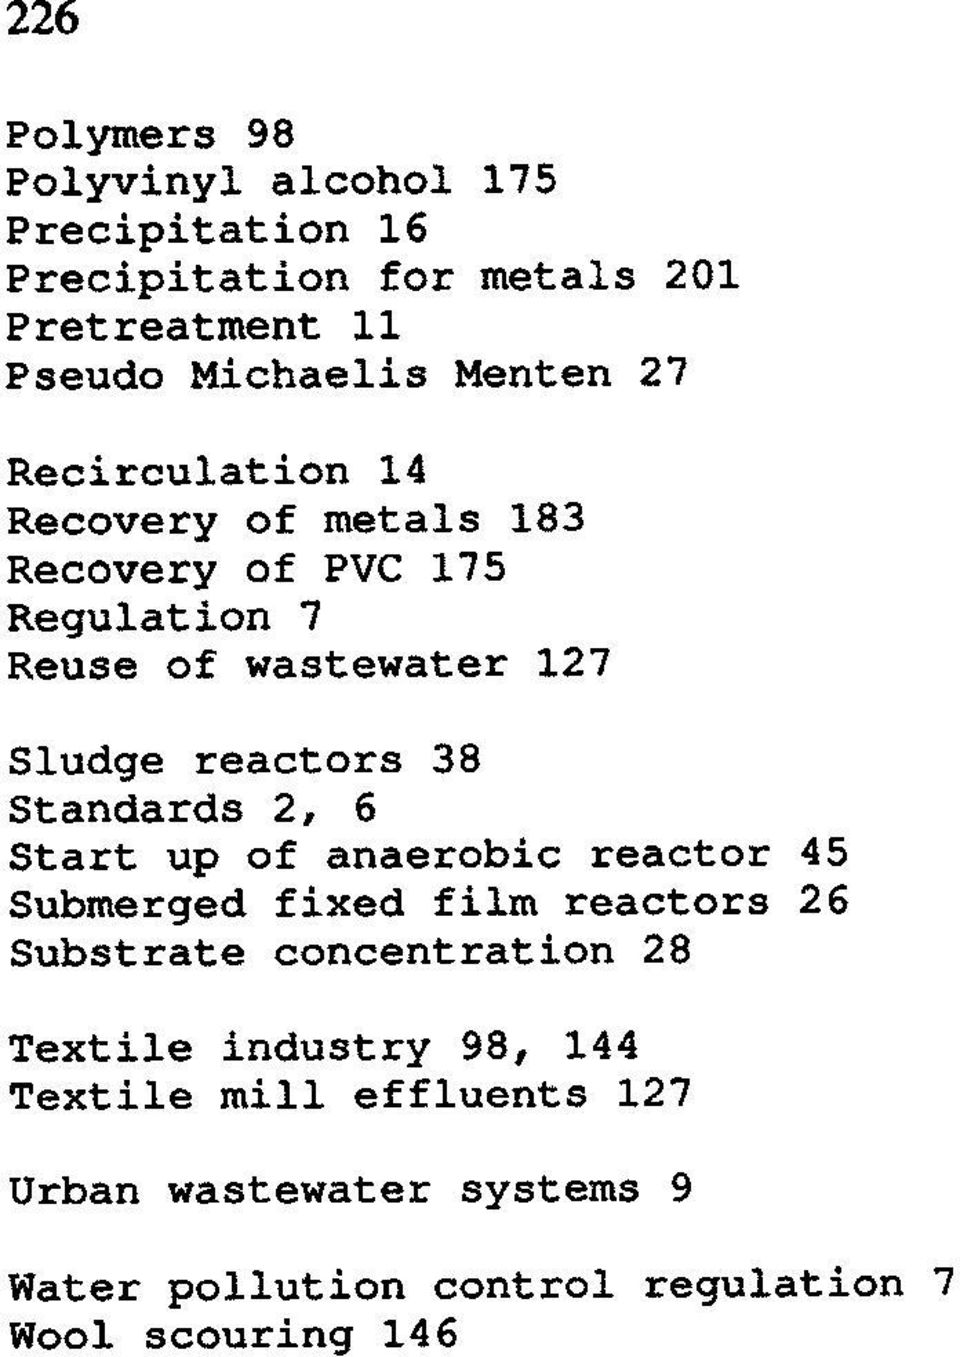 reactors 38 Standards 2, 6 Start up of anaerobic reactor 45 Submerged fixed film reactors 26 Substrate concentration 28